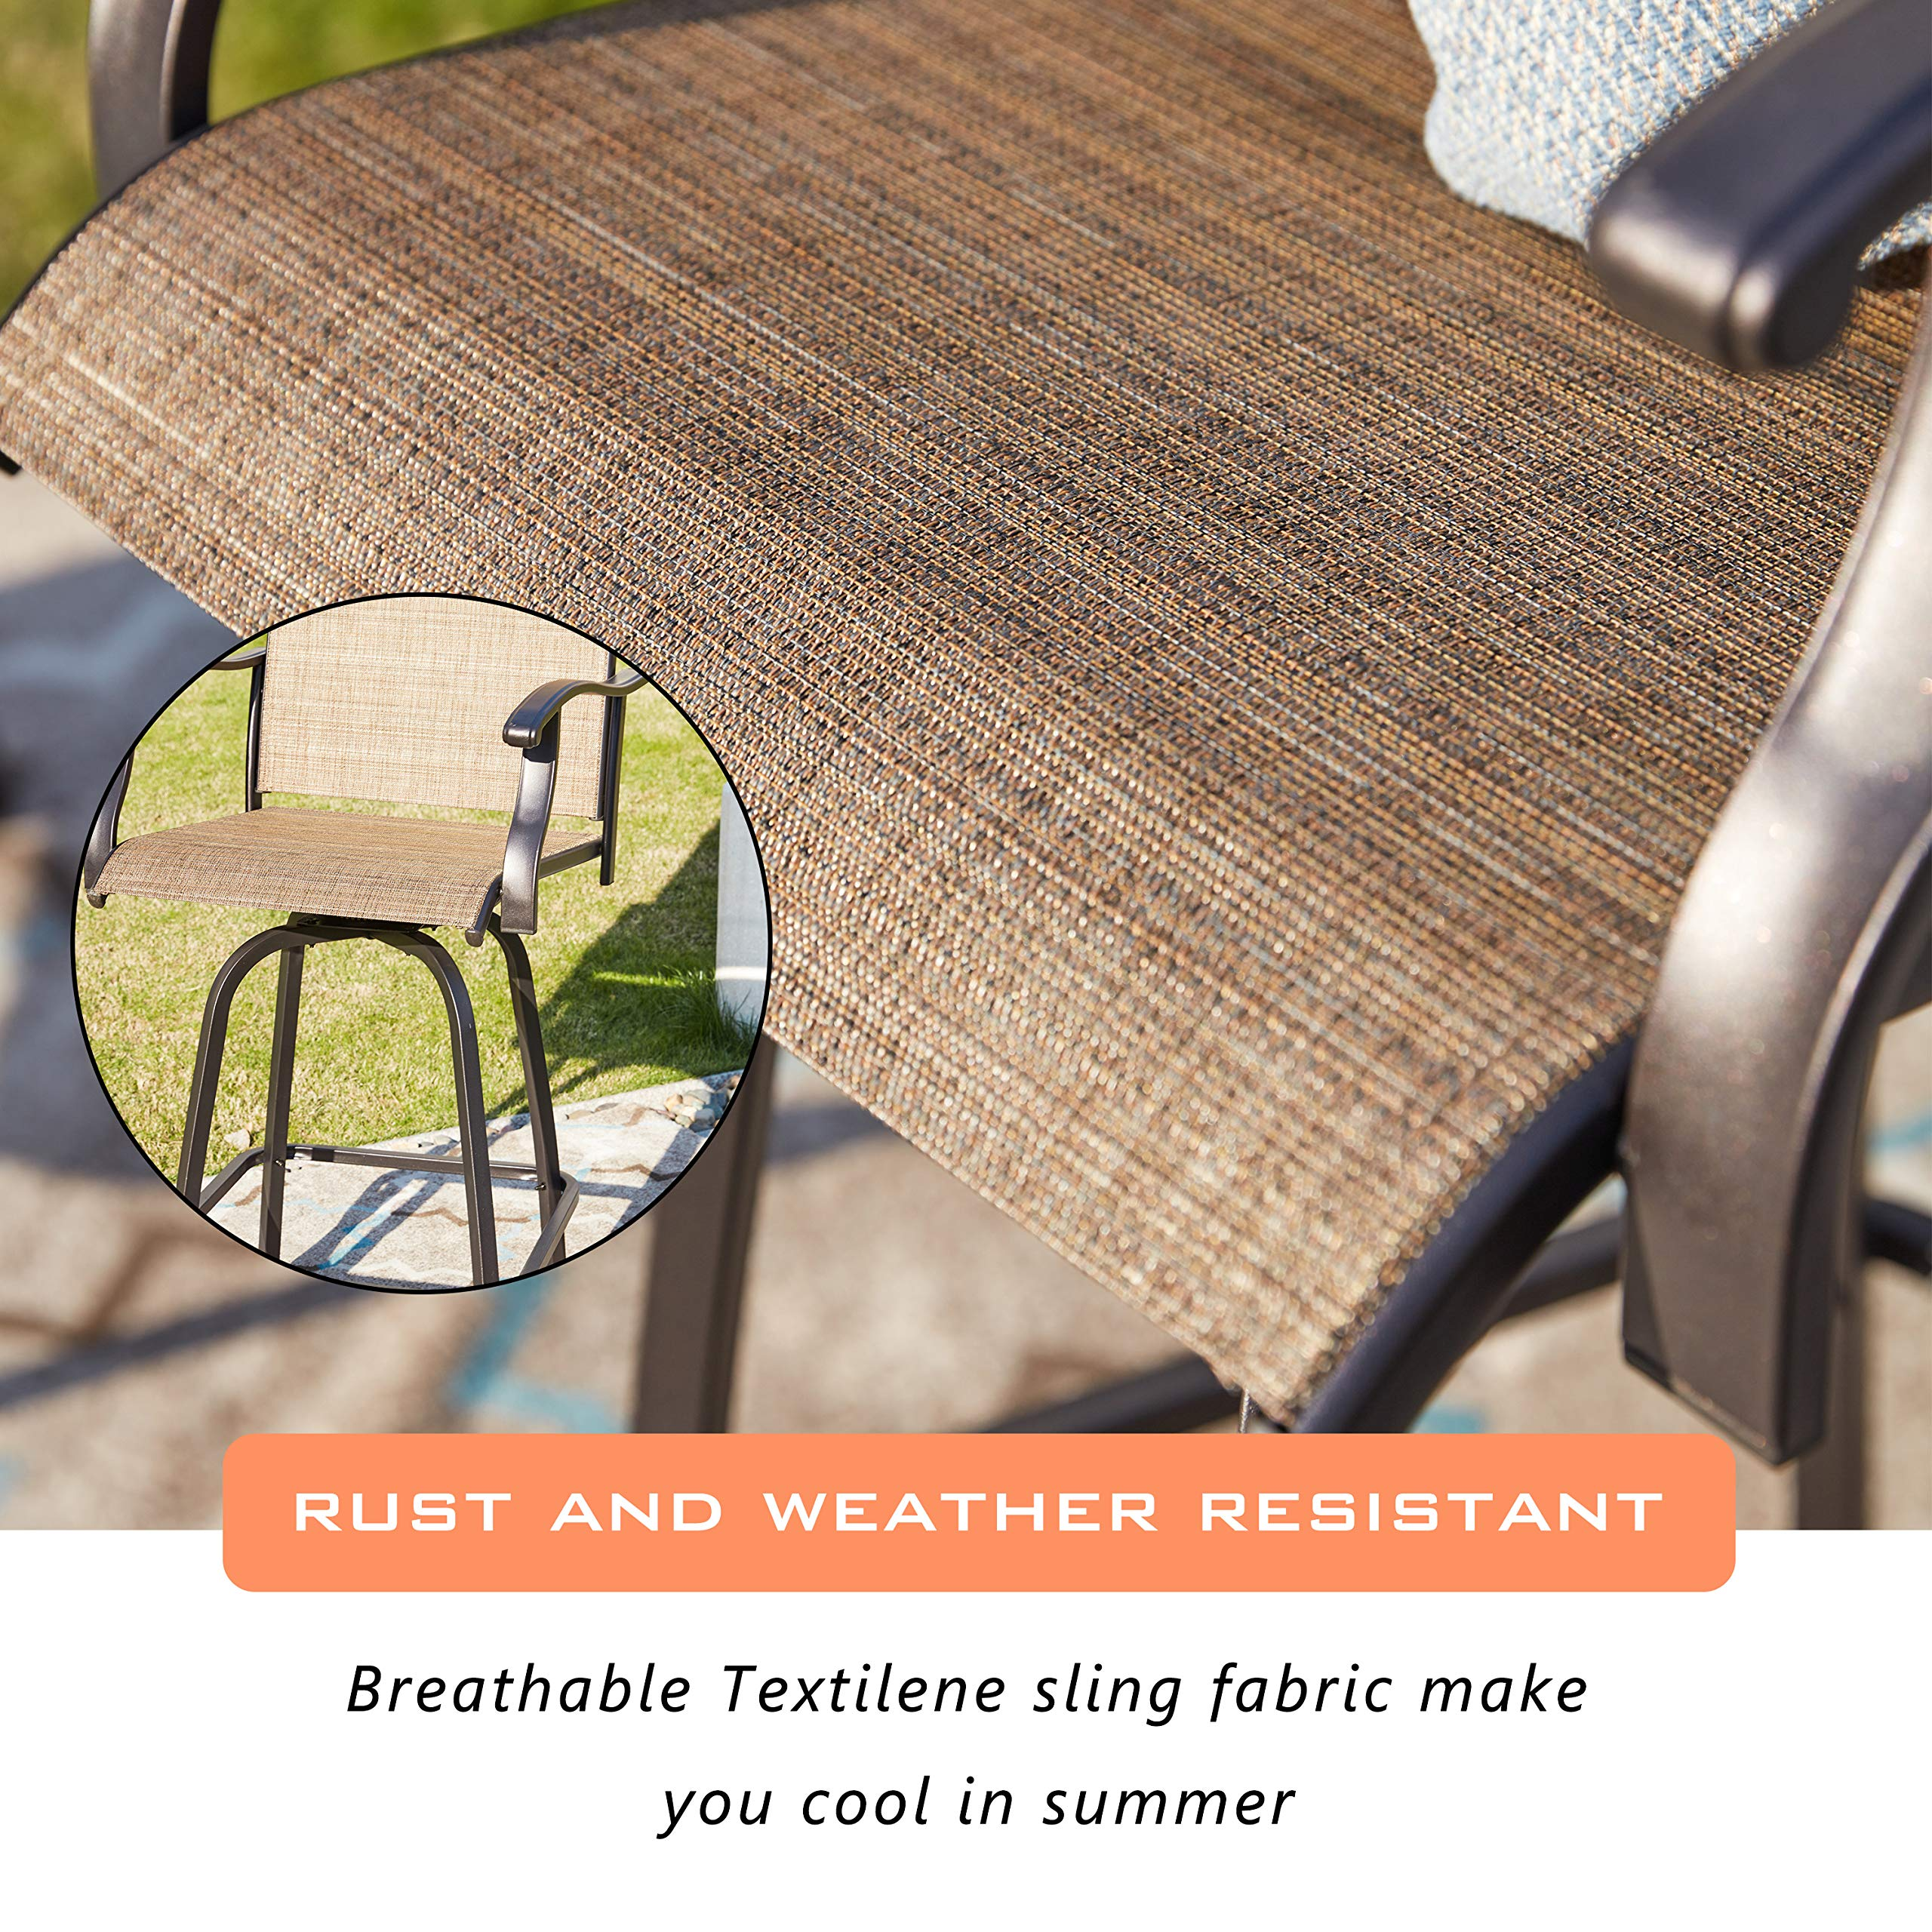 LOKATSE HOME 2 Piece Swivel Bar Stools Outdoor High Patio Chairs Furniture with All Weather Metal Frame, Beige-2chairs by LOKATSE HOME (Image #4)